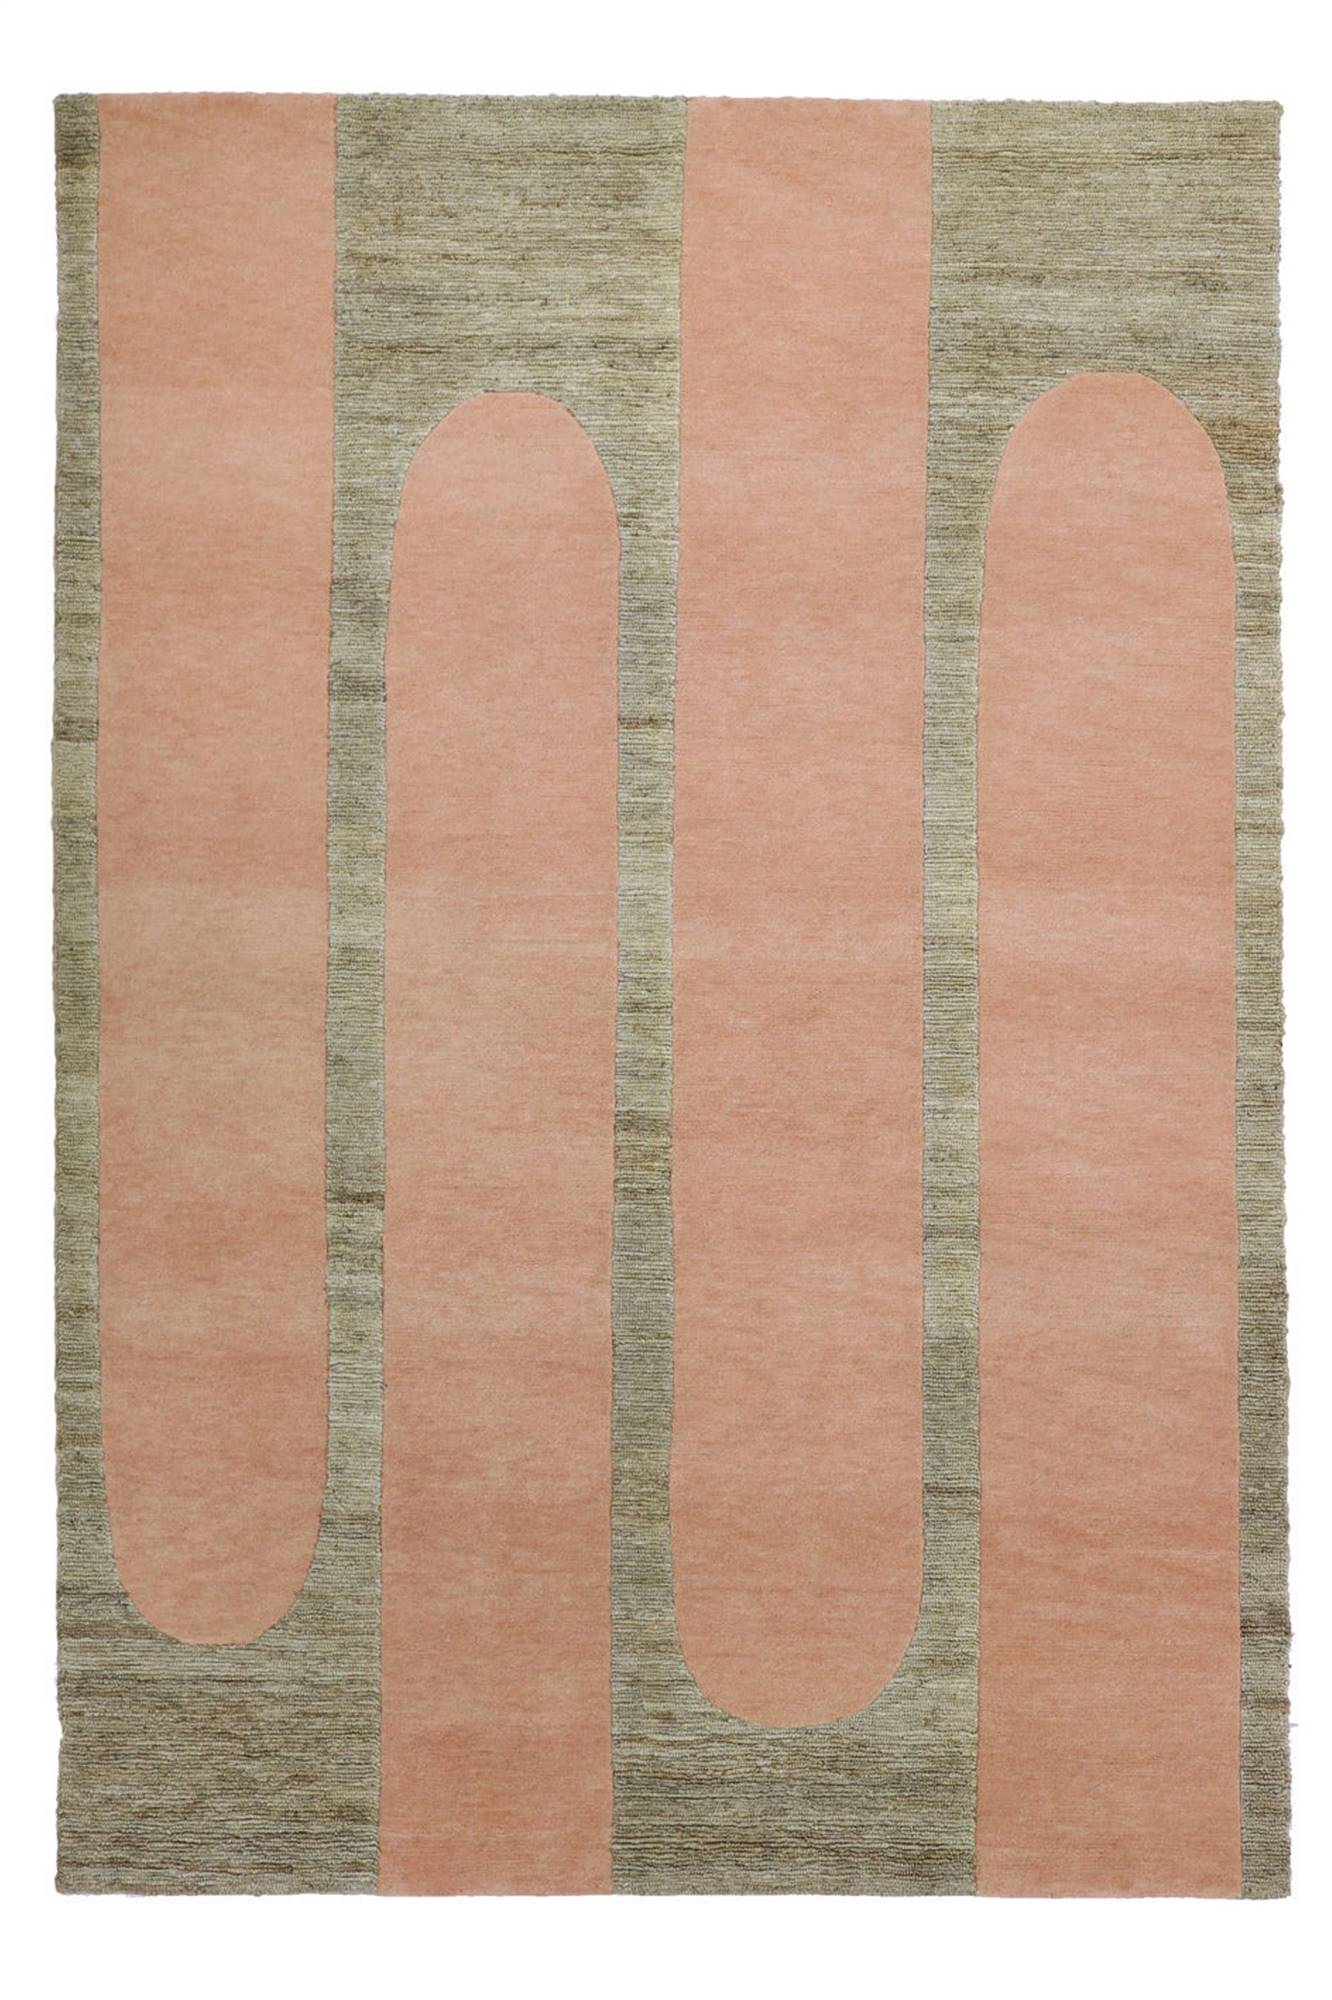 alfombra dac rugs helena ronher POPSYCLE-STRAWBERRY-FULL. Strawberry Popsycle